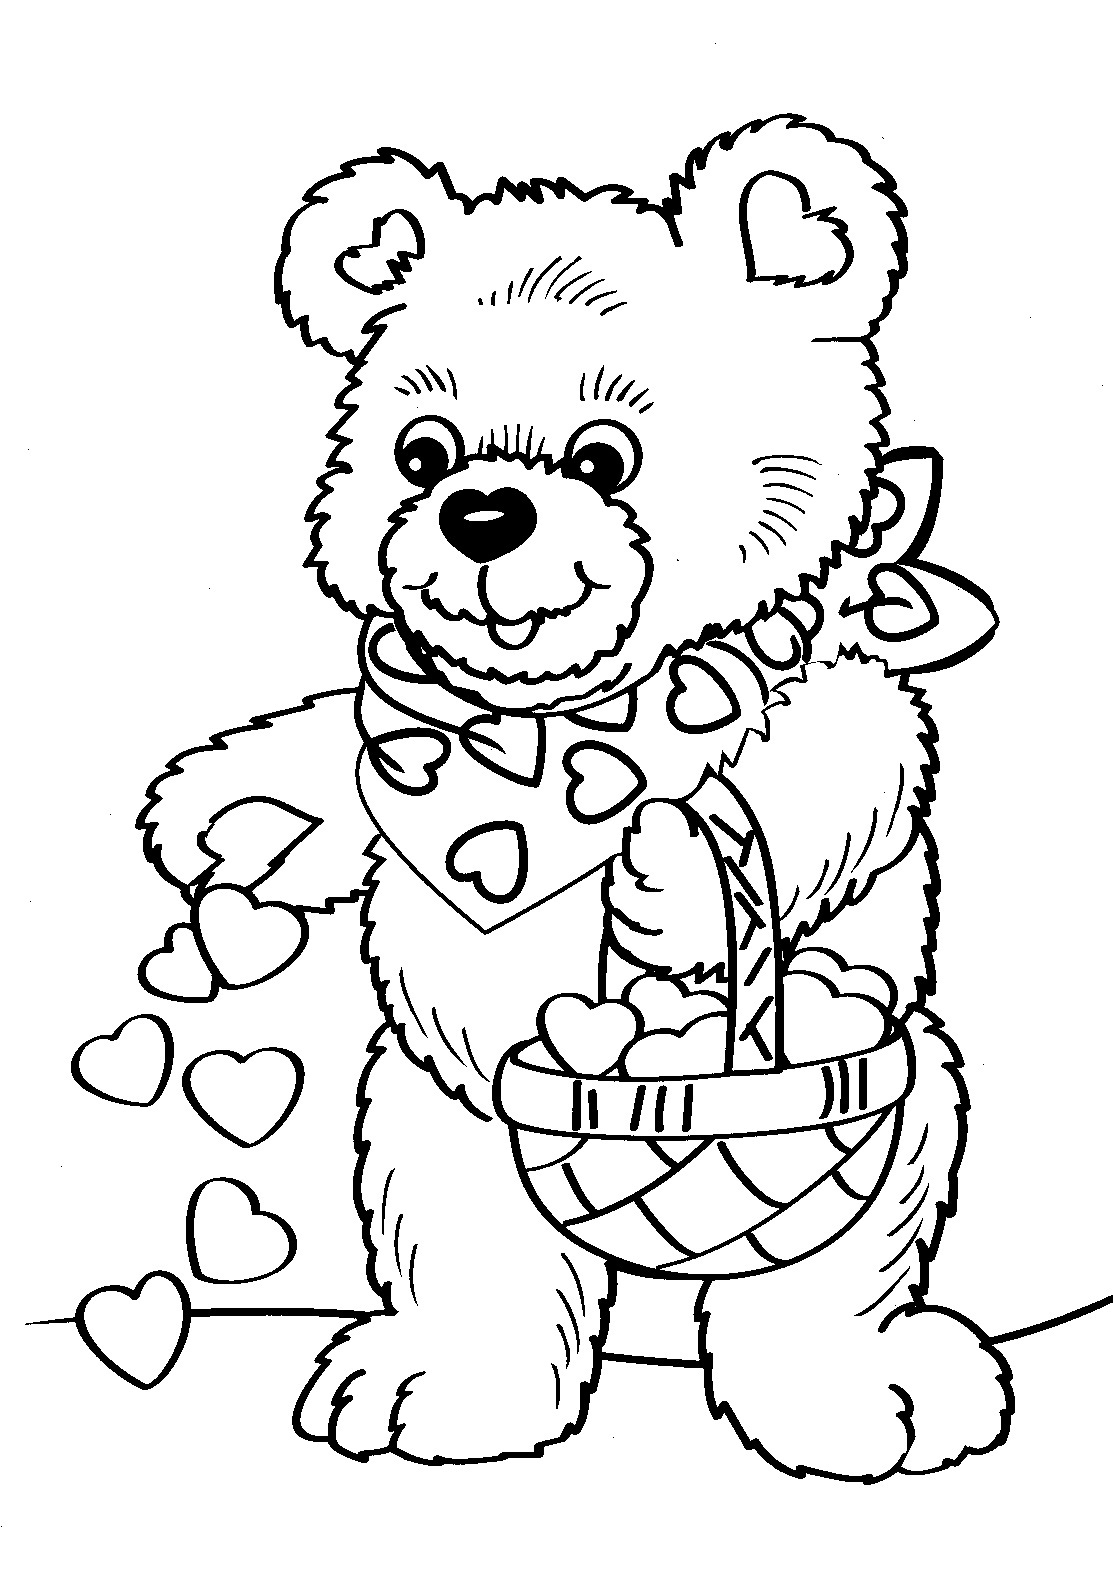 Free Printable Valentine Coloring Pages At Getdrawings Com Free